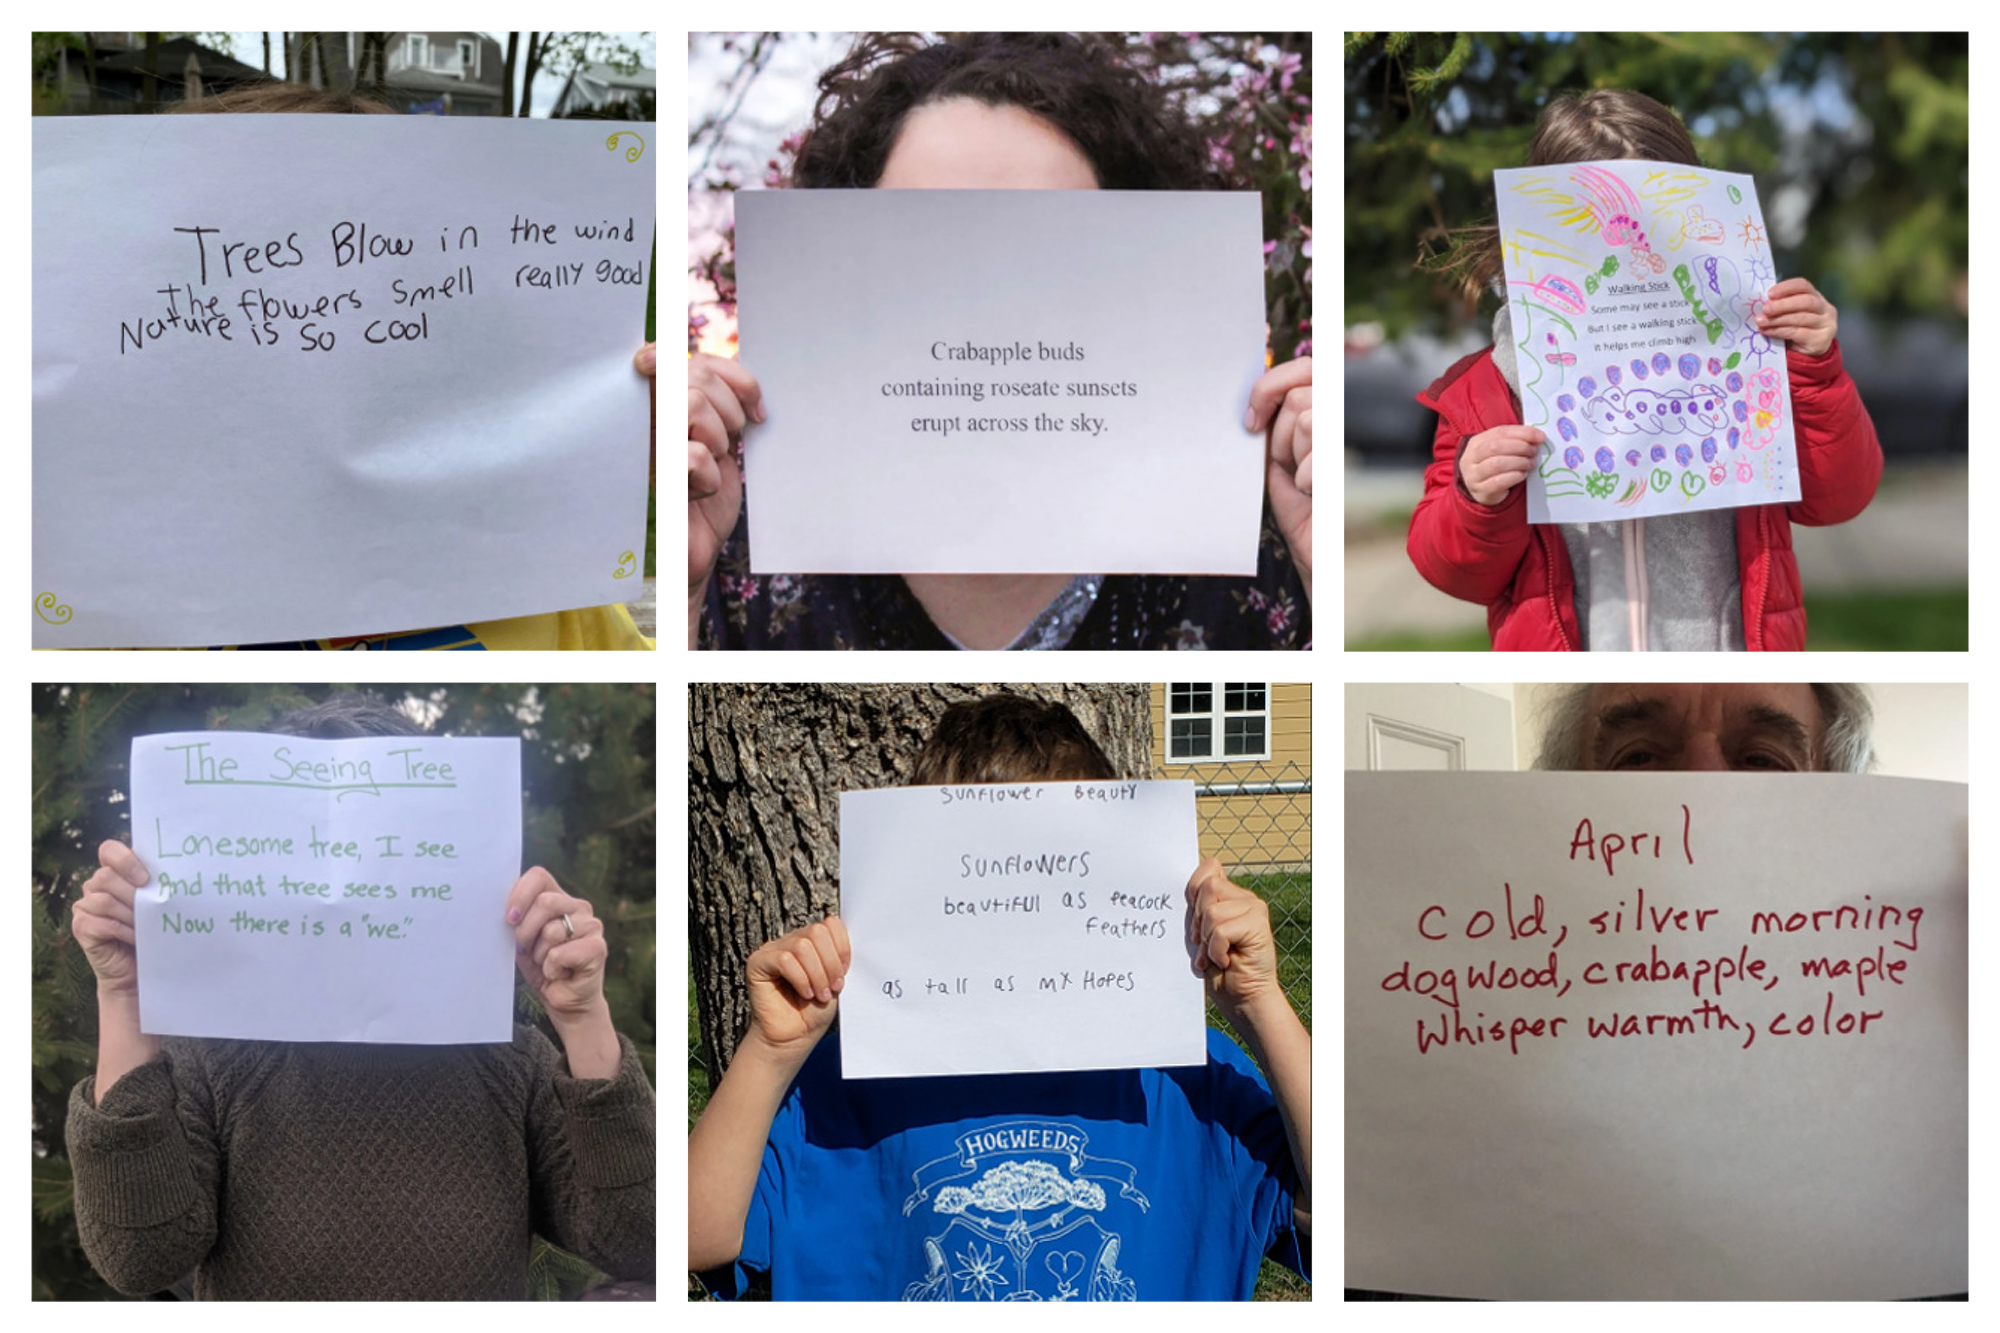 Six square collaged images of individuals holding up pieces of paper with written haiku poetry.